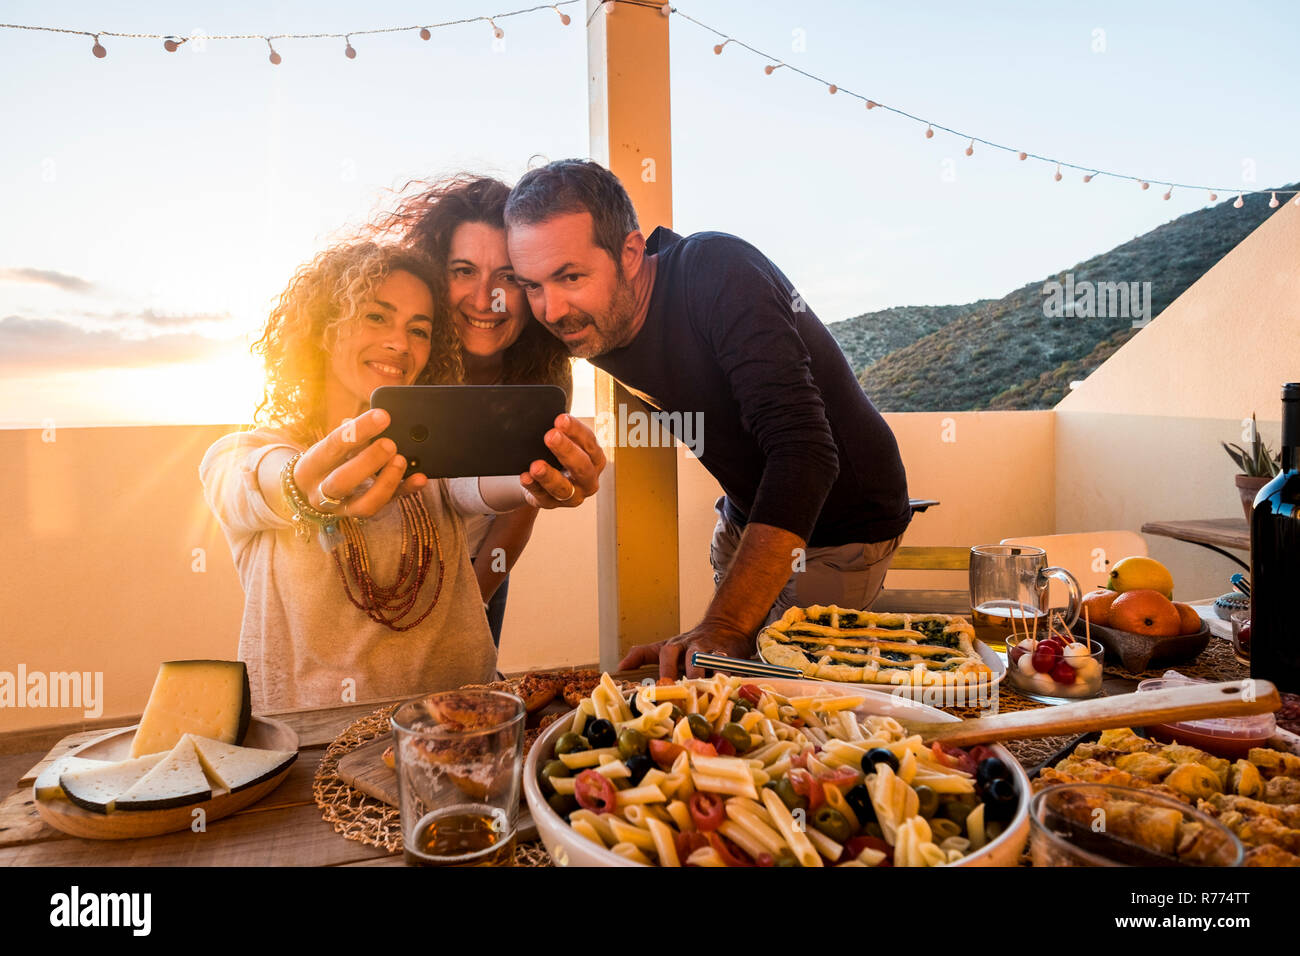 Group of people friednship concept have fun together taking selfie during a dinner or lunch outdoor at home in the terrace - firends and caucasian wom - Stock Image